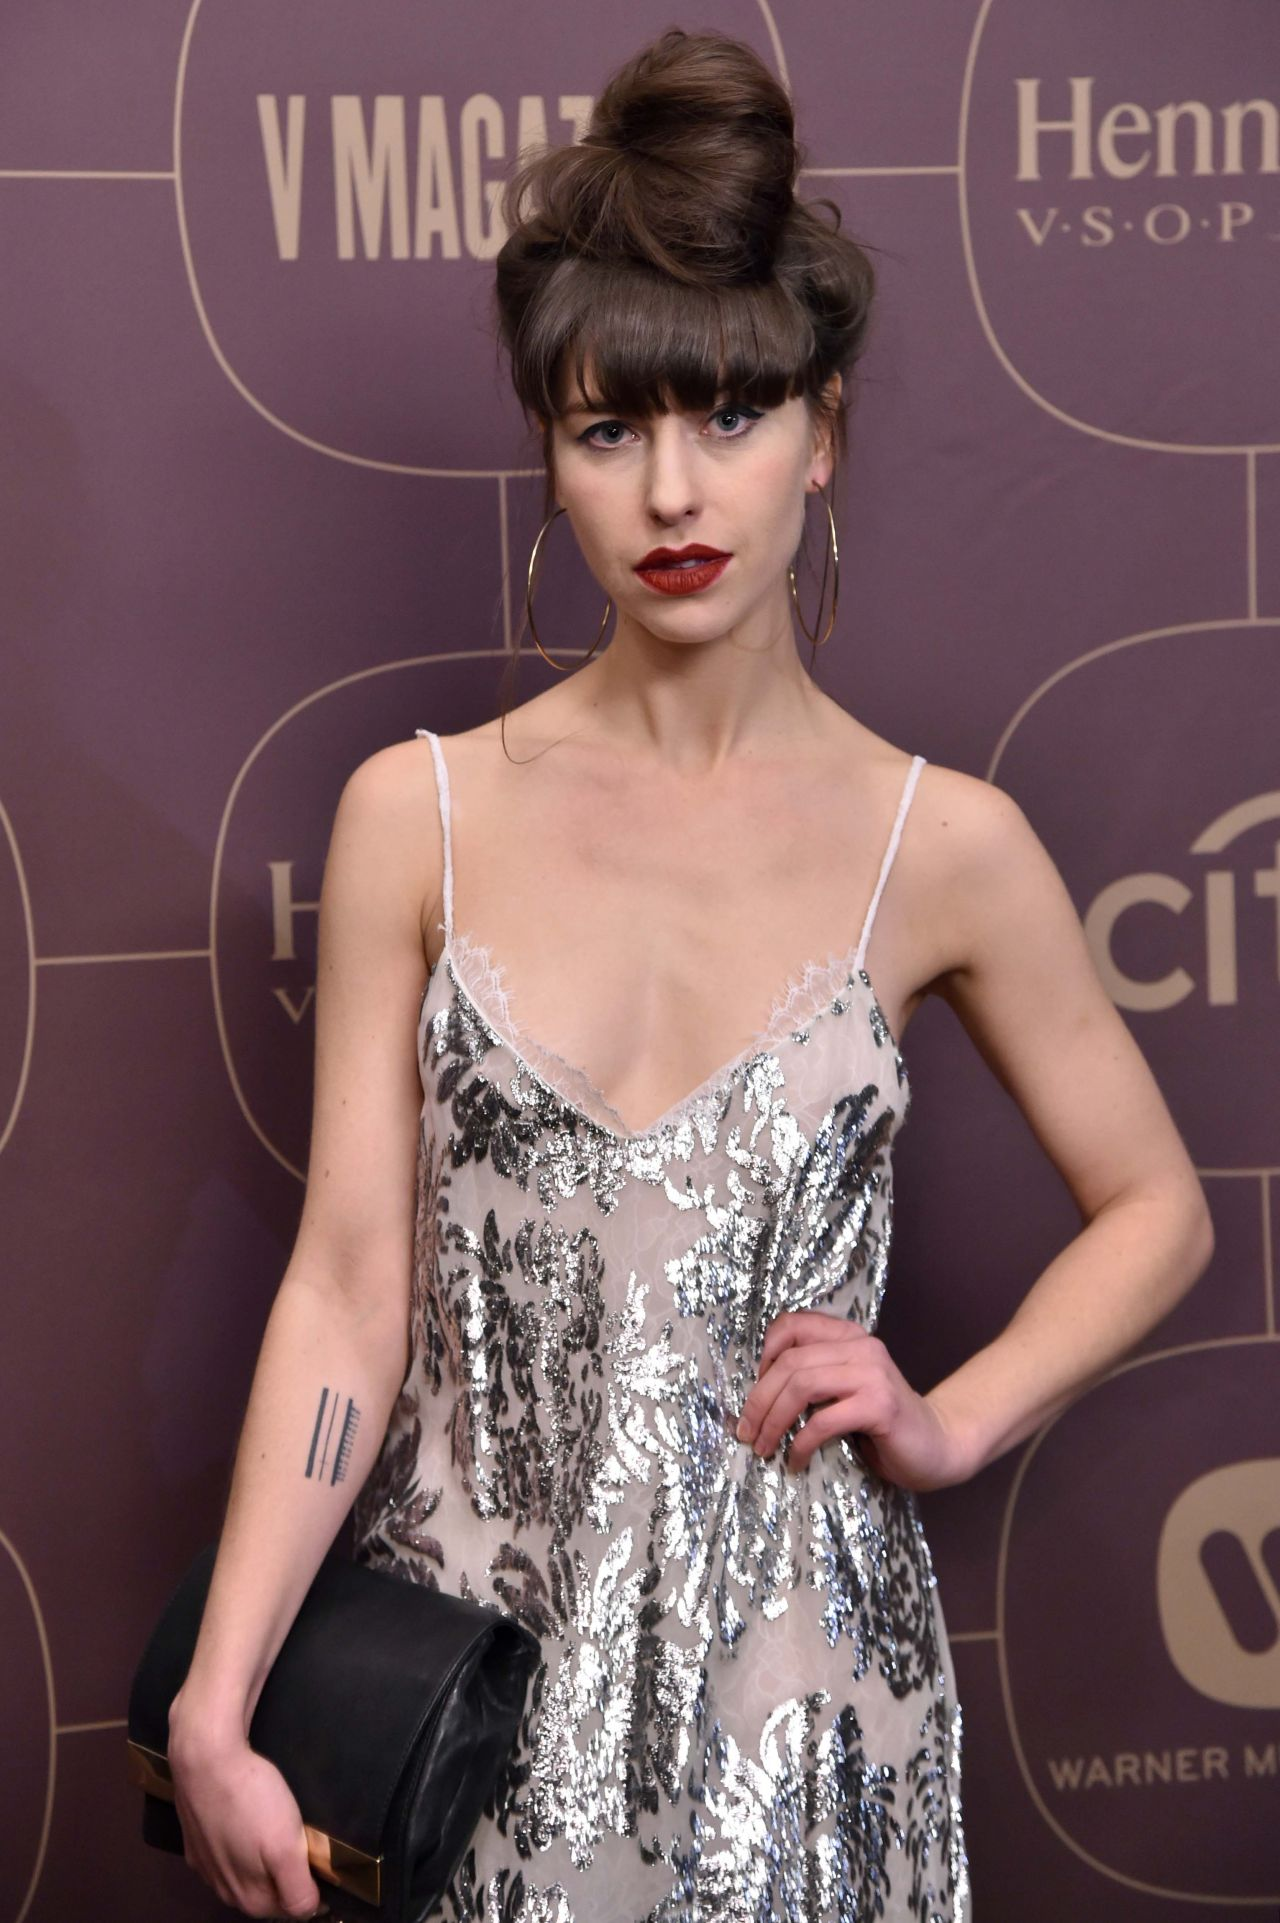 Kimbra Warner Music Pre Grammy 2018 Party In New York